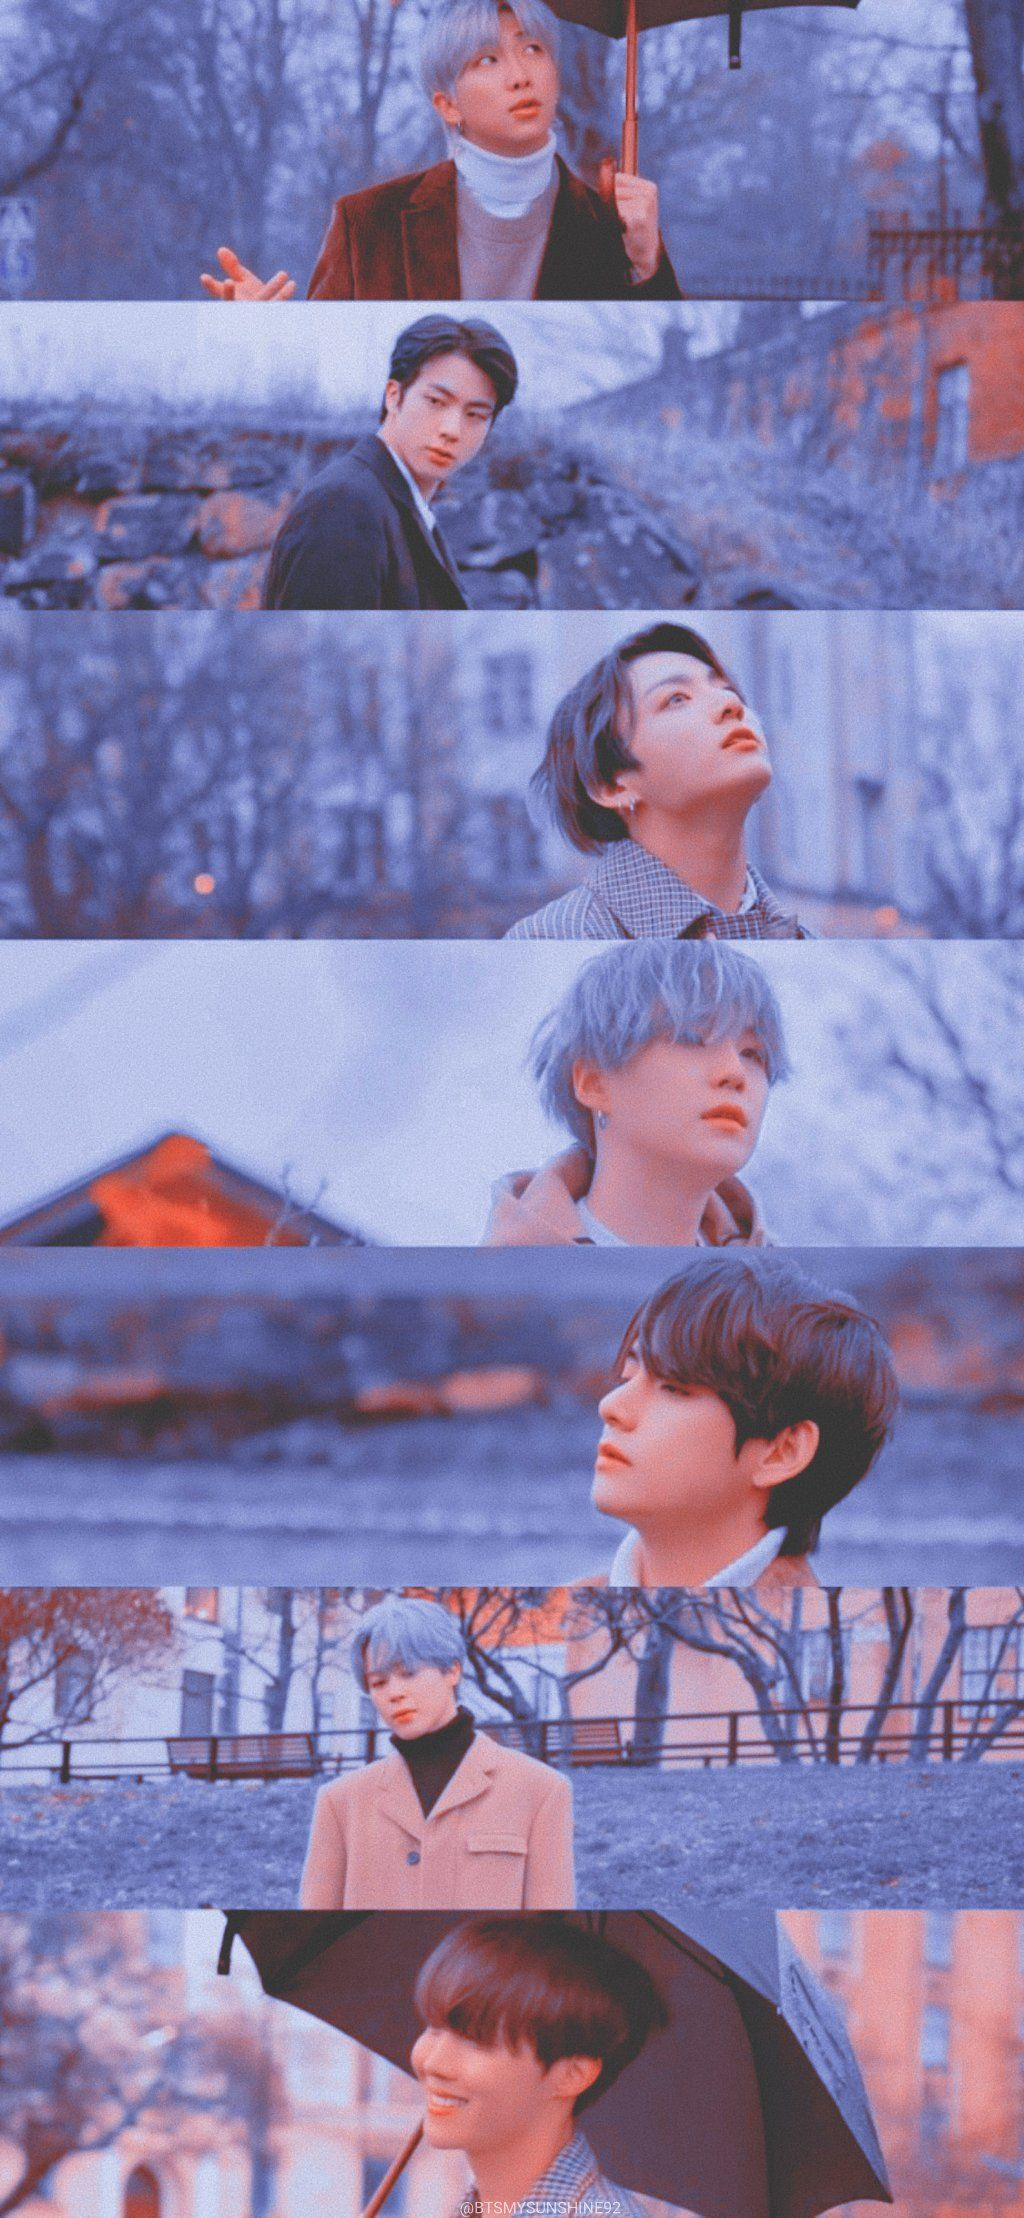 2020 BTS WINTER PACKAGE PREVIEW SPOT 2 Lockscreen Wallpapers 1024x2218